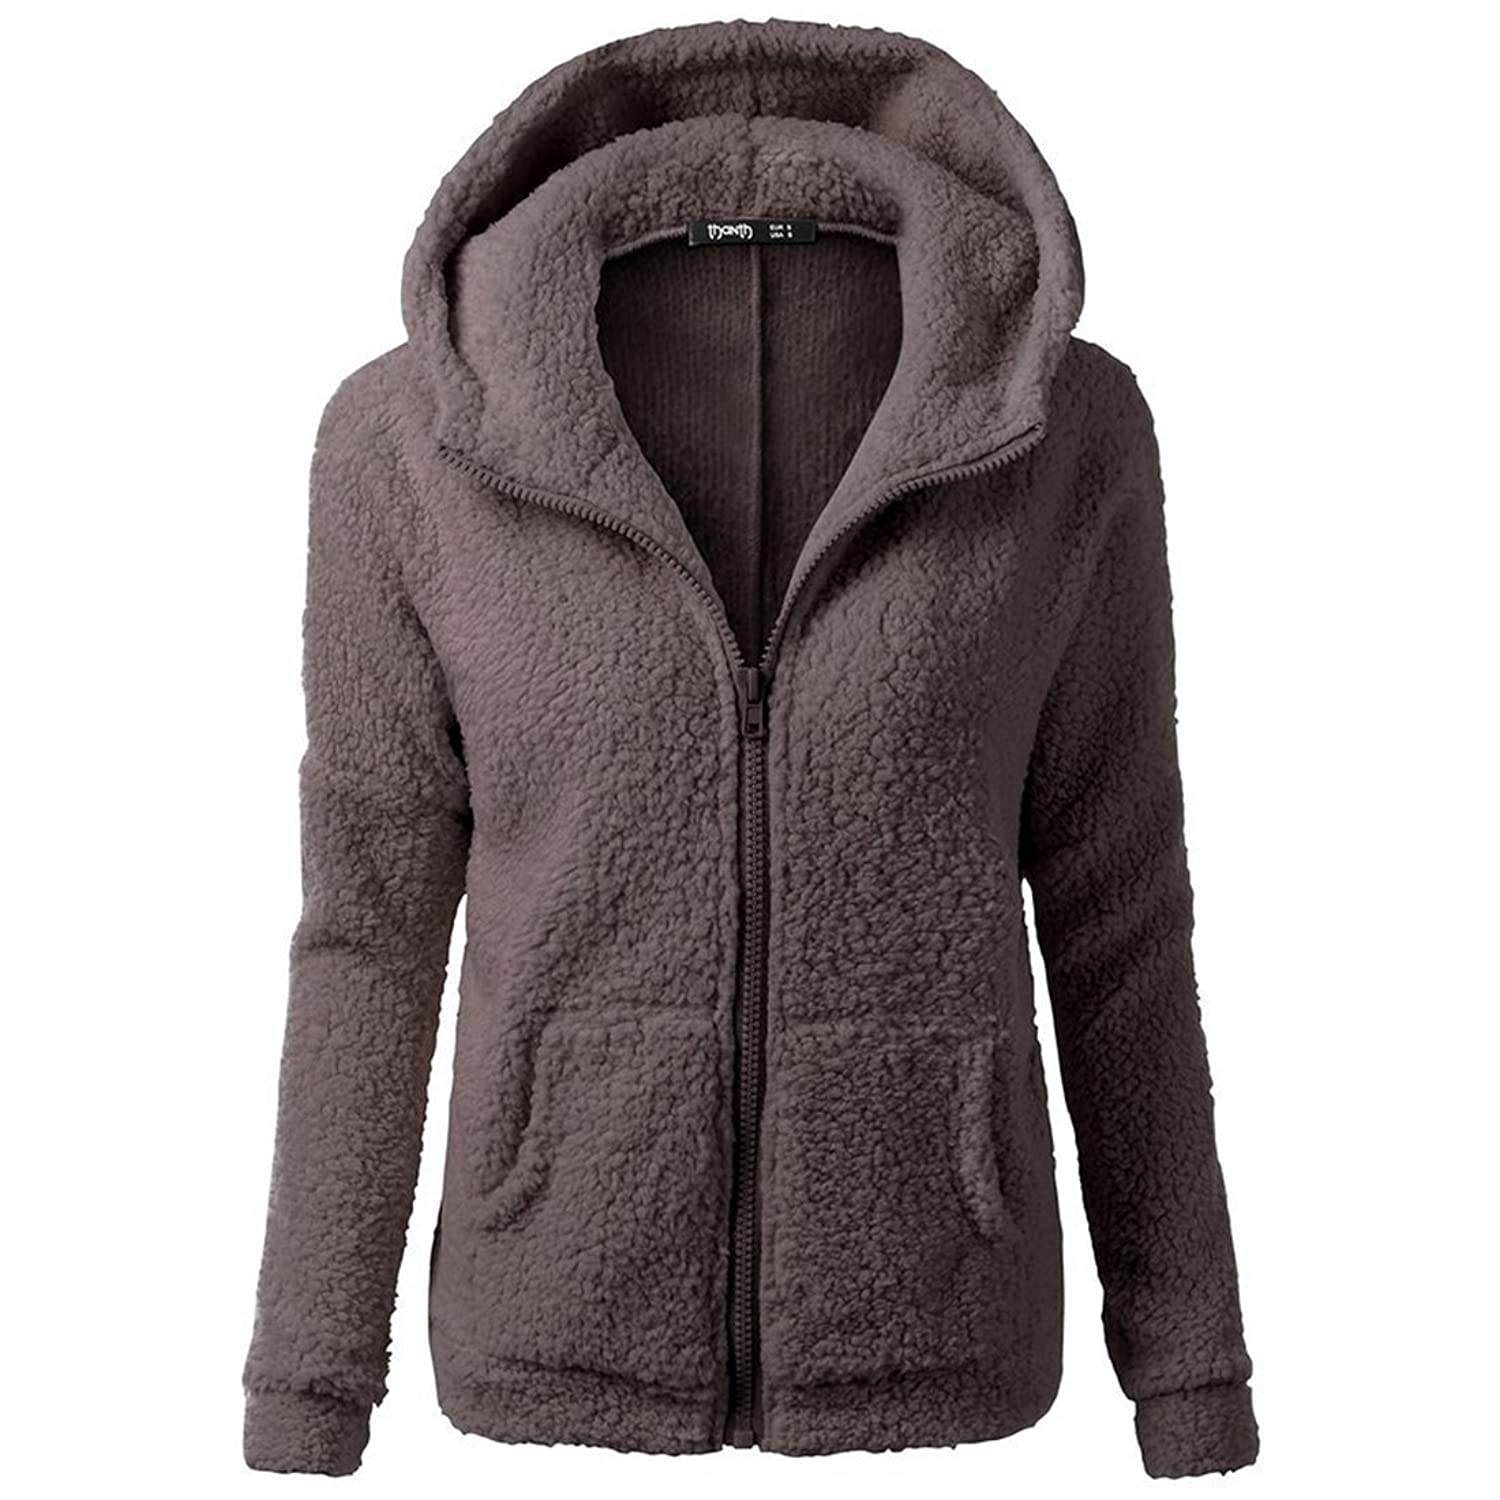 Women's Petite Fashion Hoodies Sweatshirts | Amazon.com